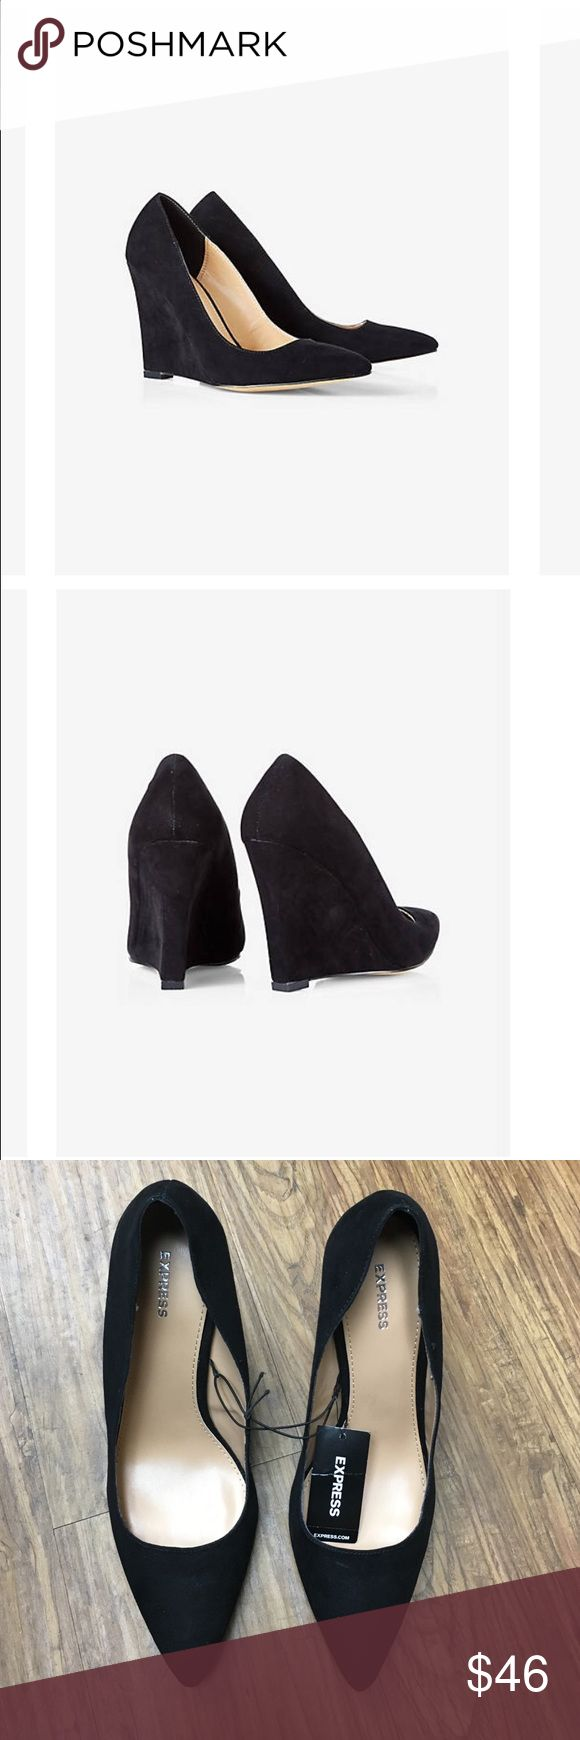 """Faux Suede Pointed Toe Wedge Pump NWT Pointed toe. Padded footbed, 3 3/4"""" covered wedge heel. Synthetic upper and sole Express Shoes Wedges"""